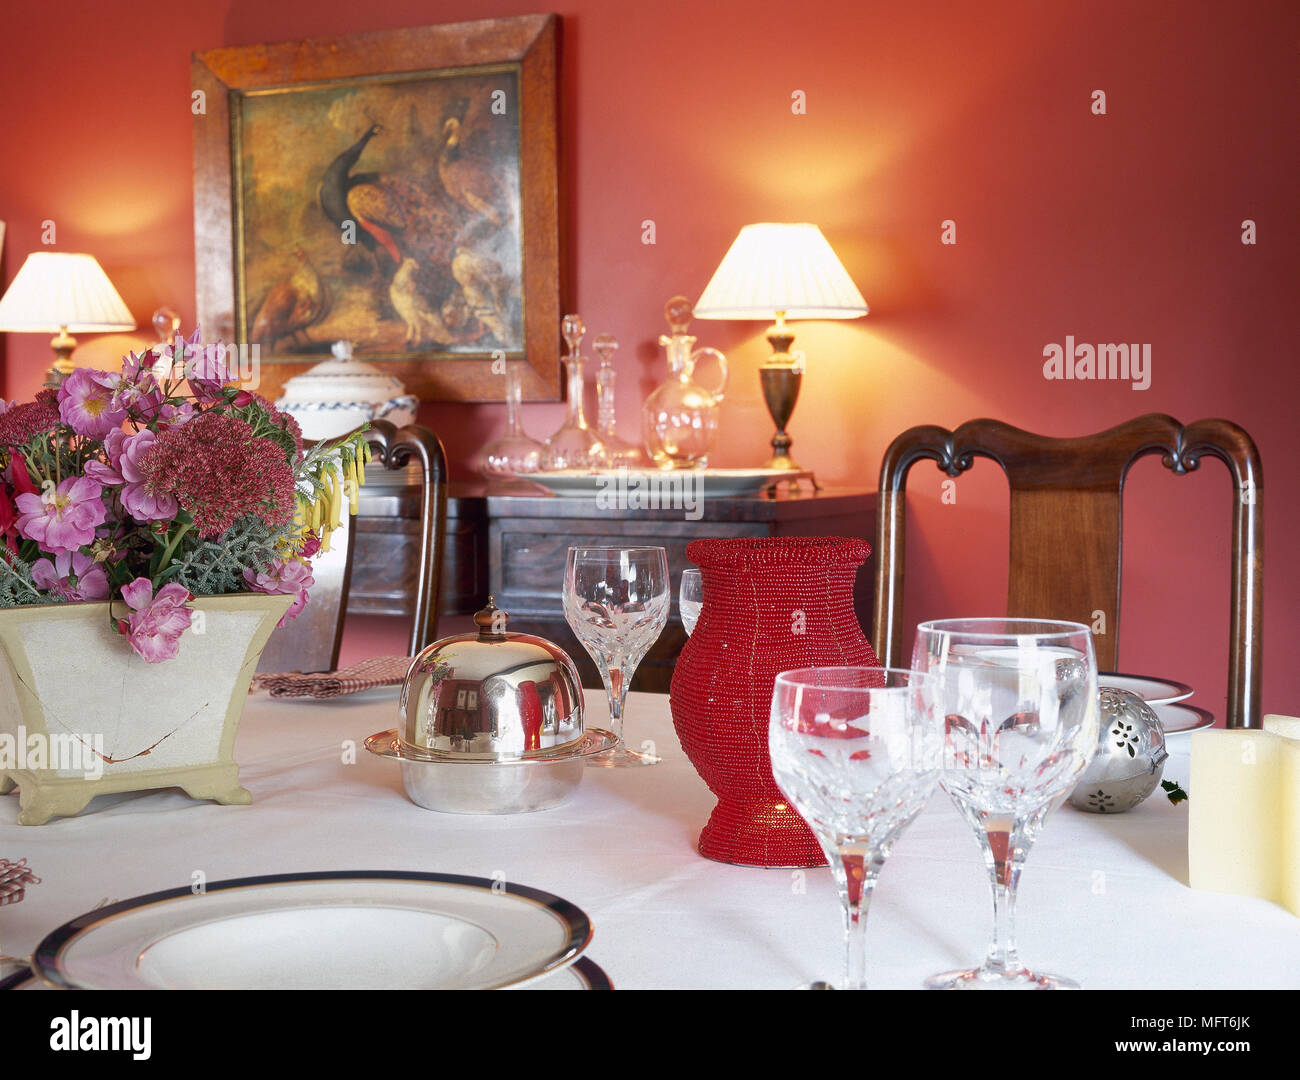 Picture of: Traditional Red Dining Room Detail Of A Dining Table With Table Settings And Lit Table Lamps On A Buffet Stock Photo Alamy